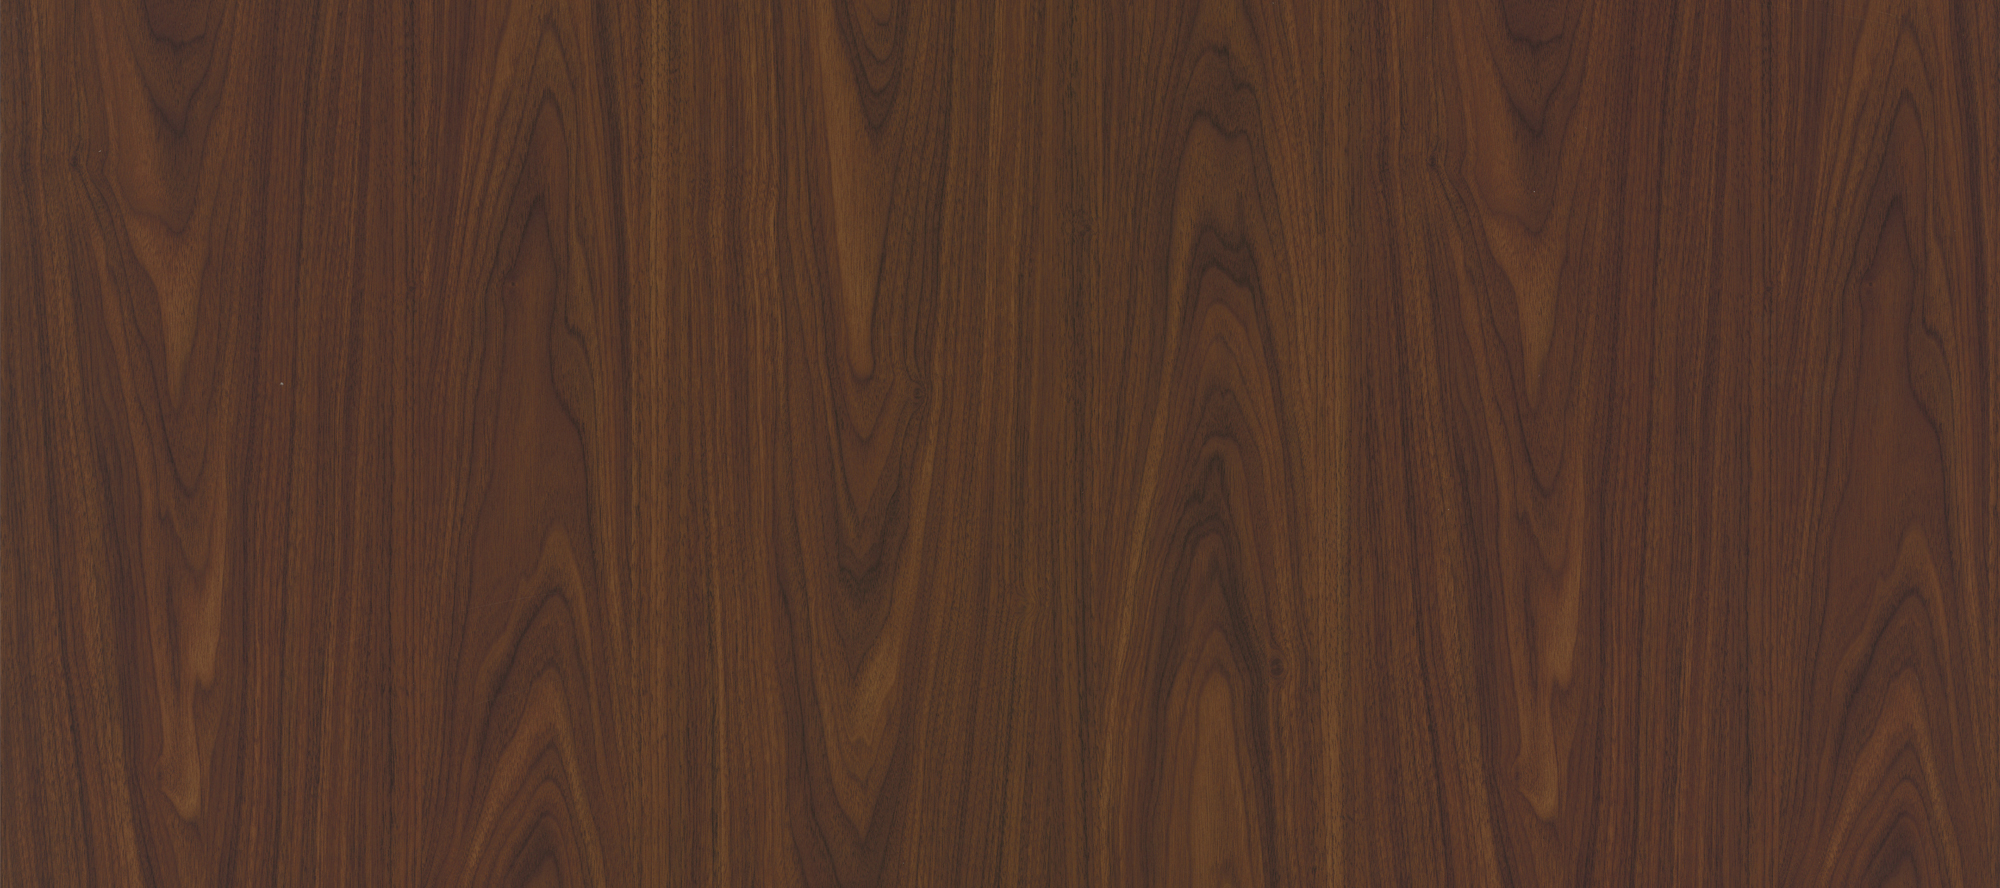 1MM International Laminate Design For Bedroom Wardrobe - Sundek International